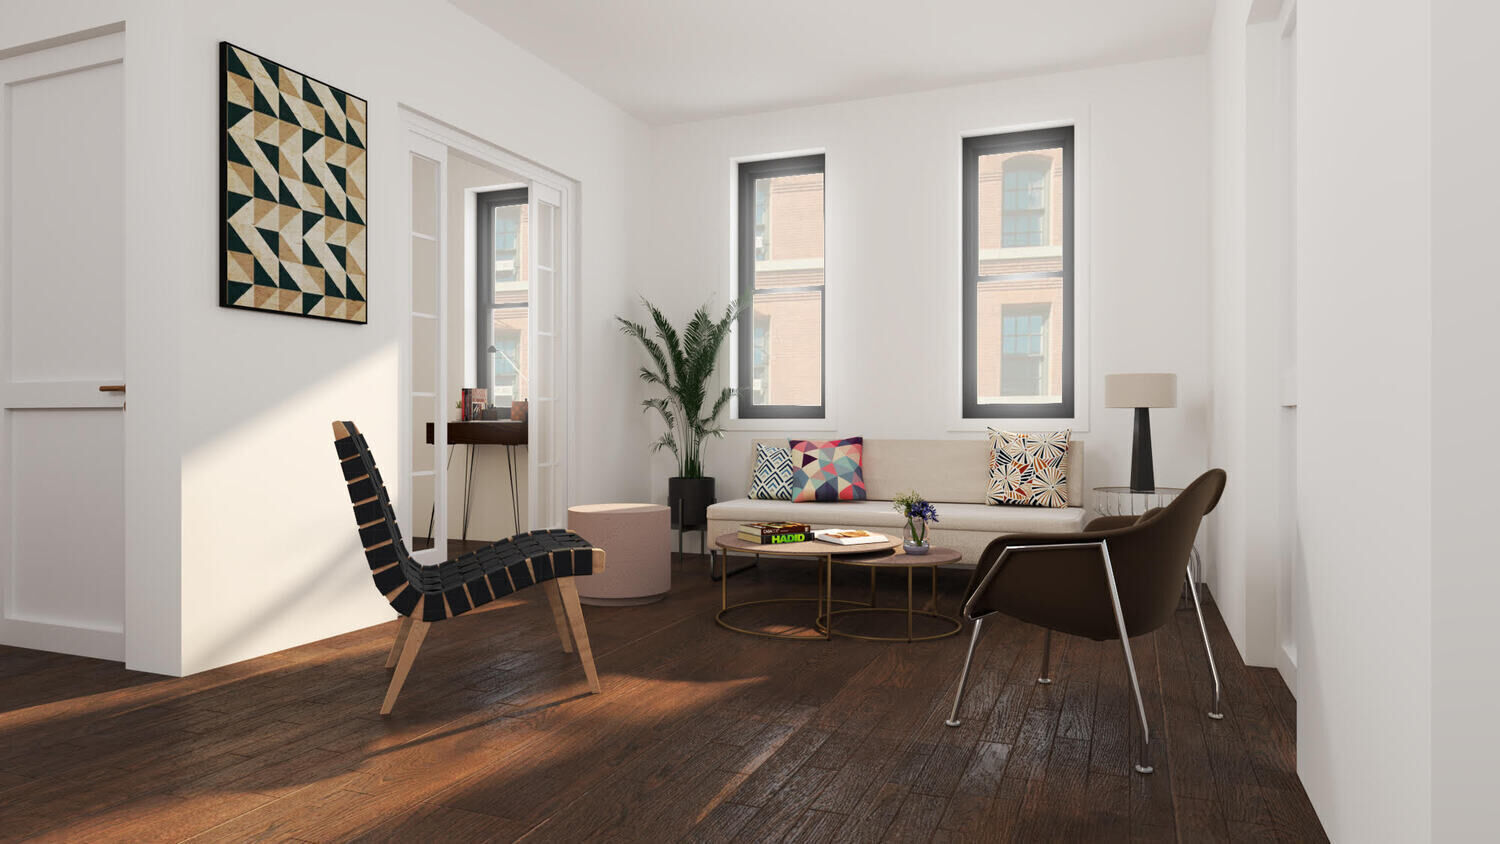 Apartment for sale at 65 West 107th Street, Apt 1-A